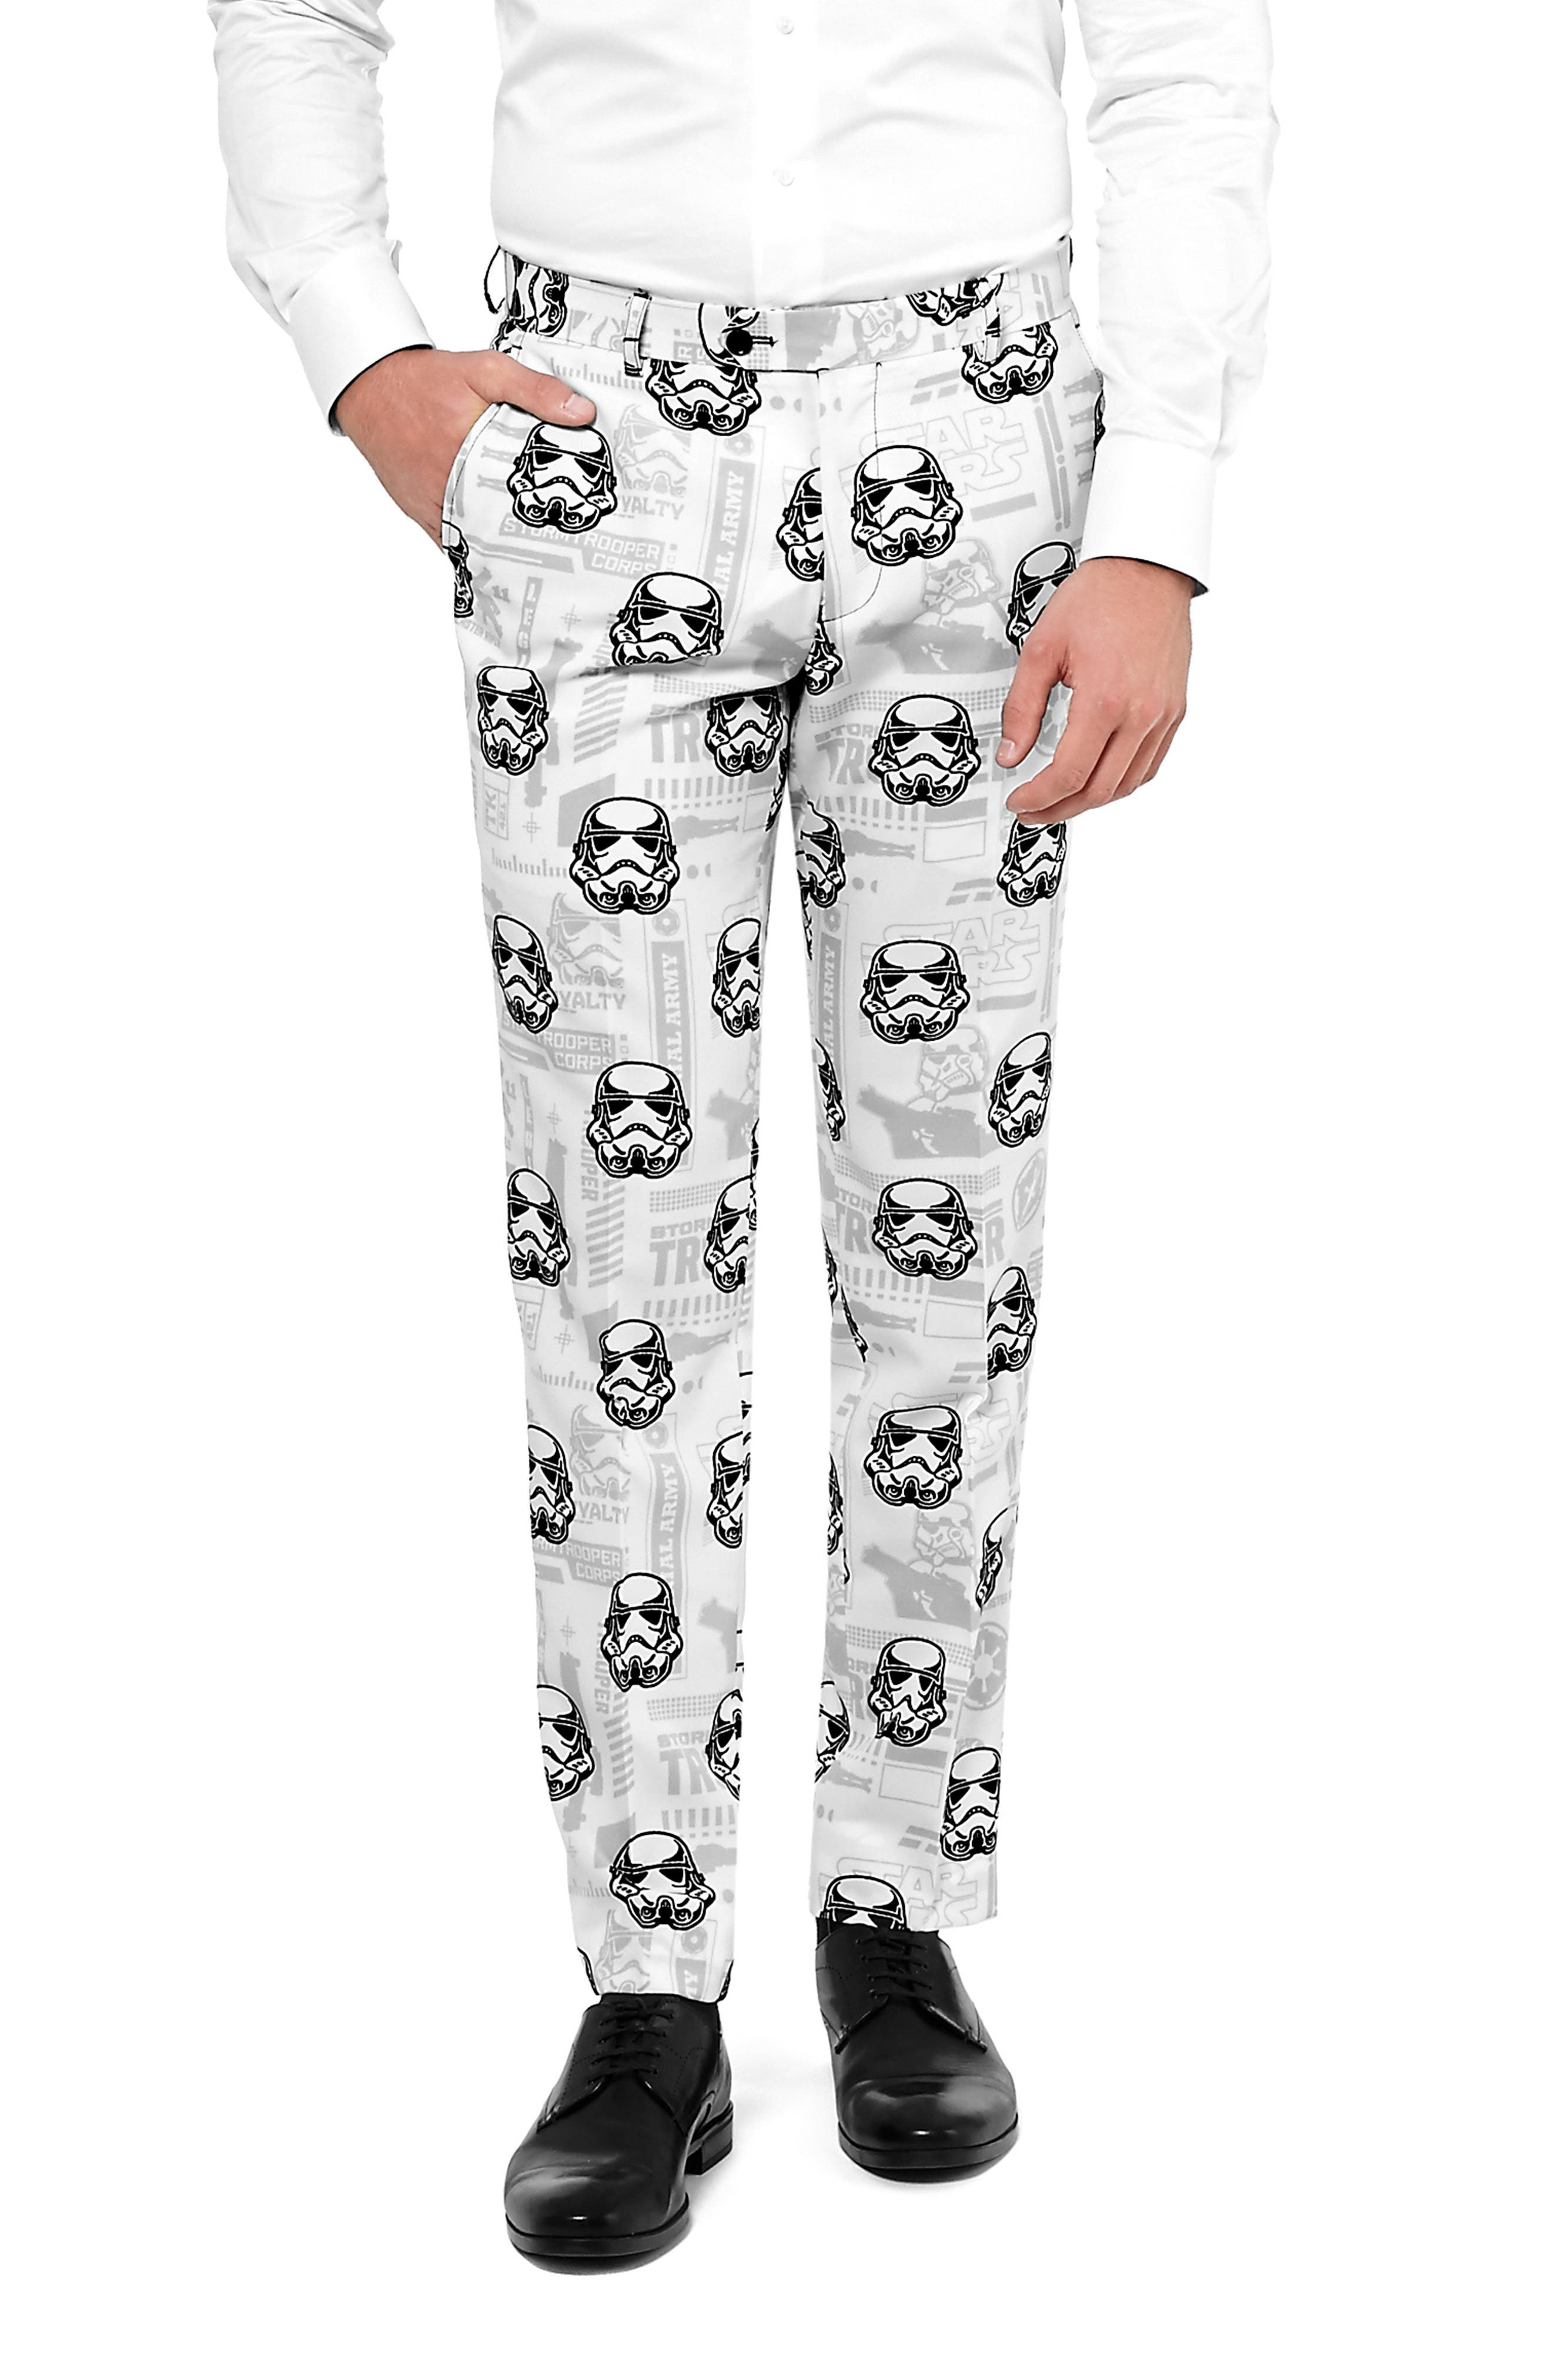 Stormtrooper Trim Fit Two-Piece Suit with Tie,                             Main thumbnail 1, color,                             100